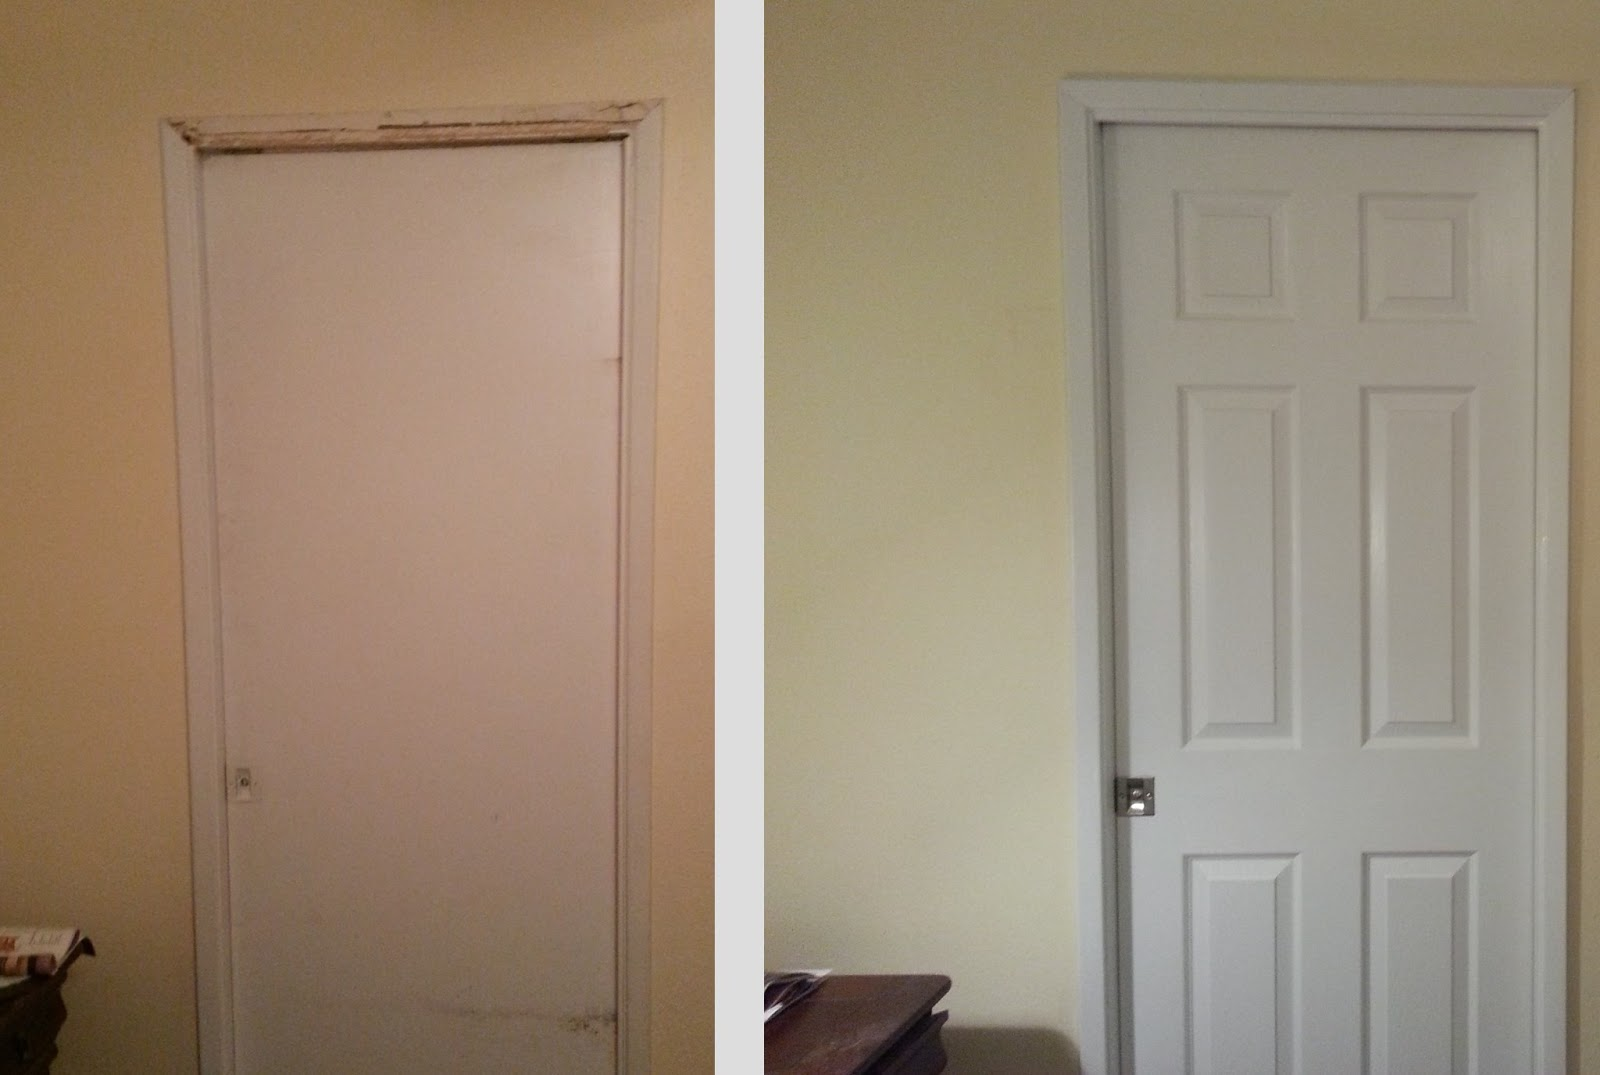 How to install a pocket door chjasity37z s blog - Home depot interior door installation cost ...